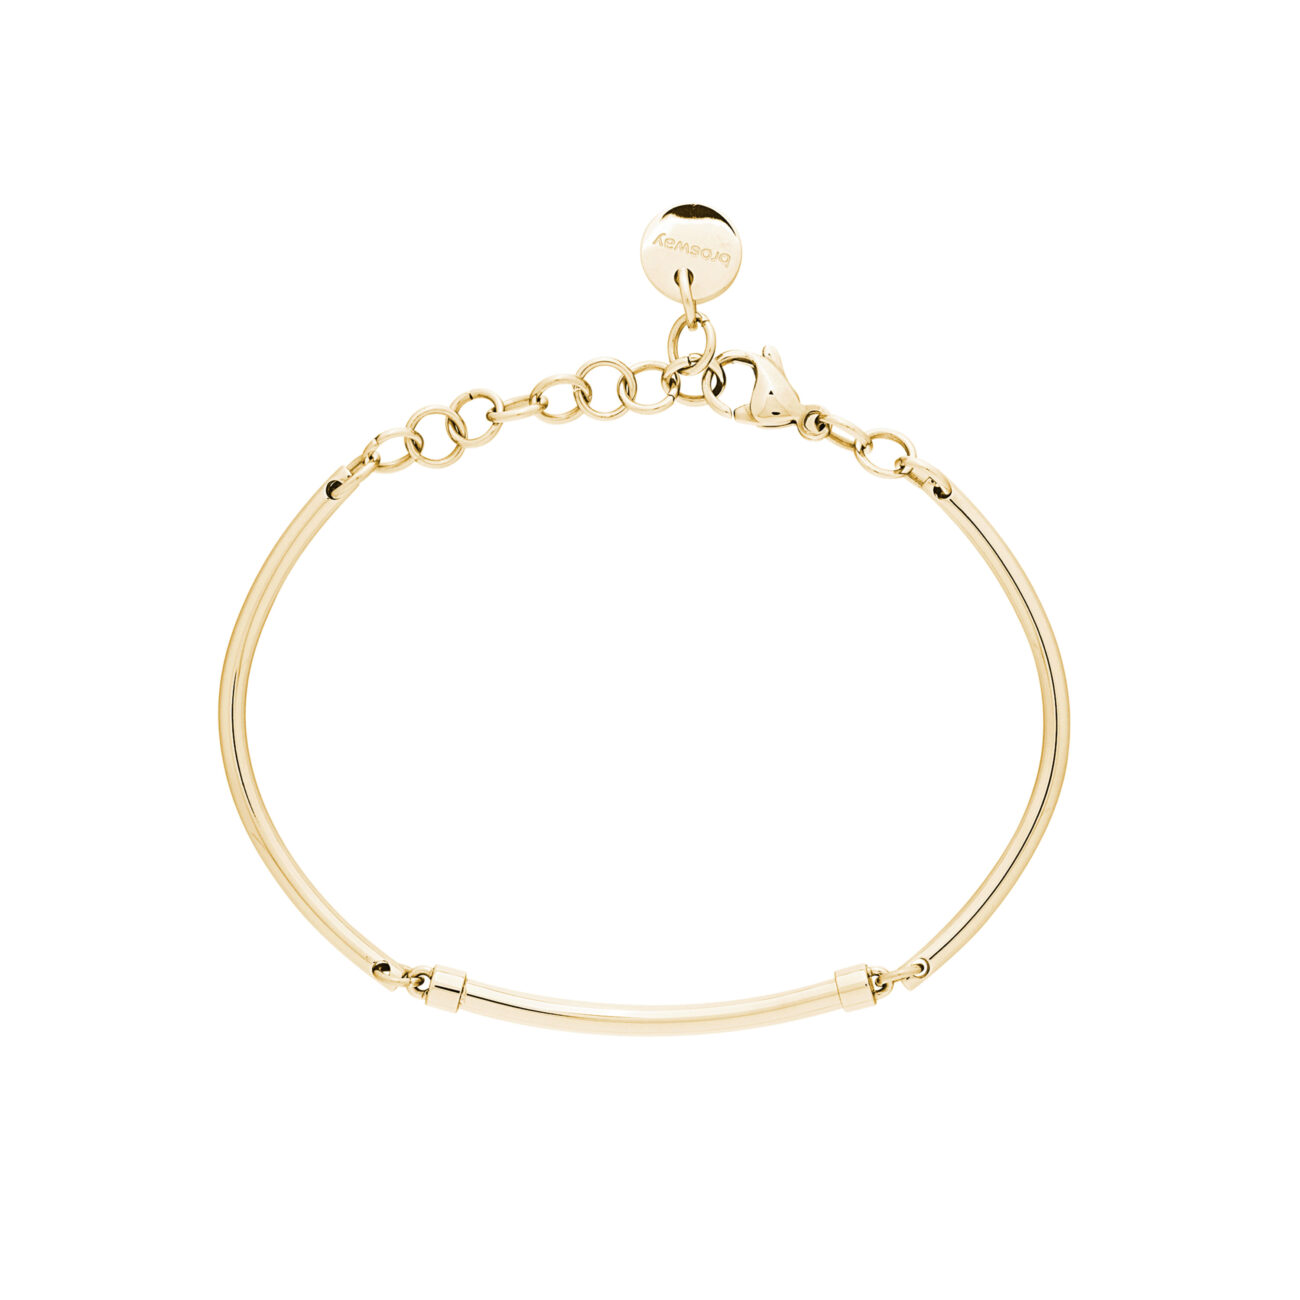 316L stainless steel semi-rigid bracelet and gold pvd